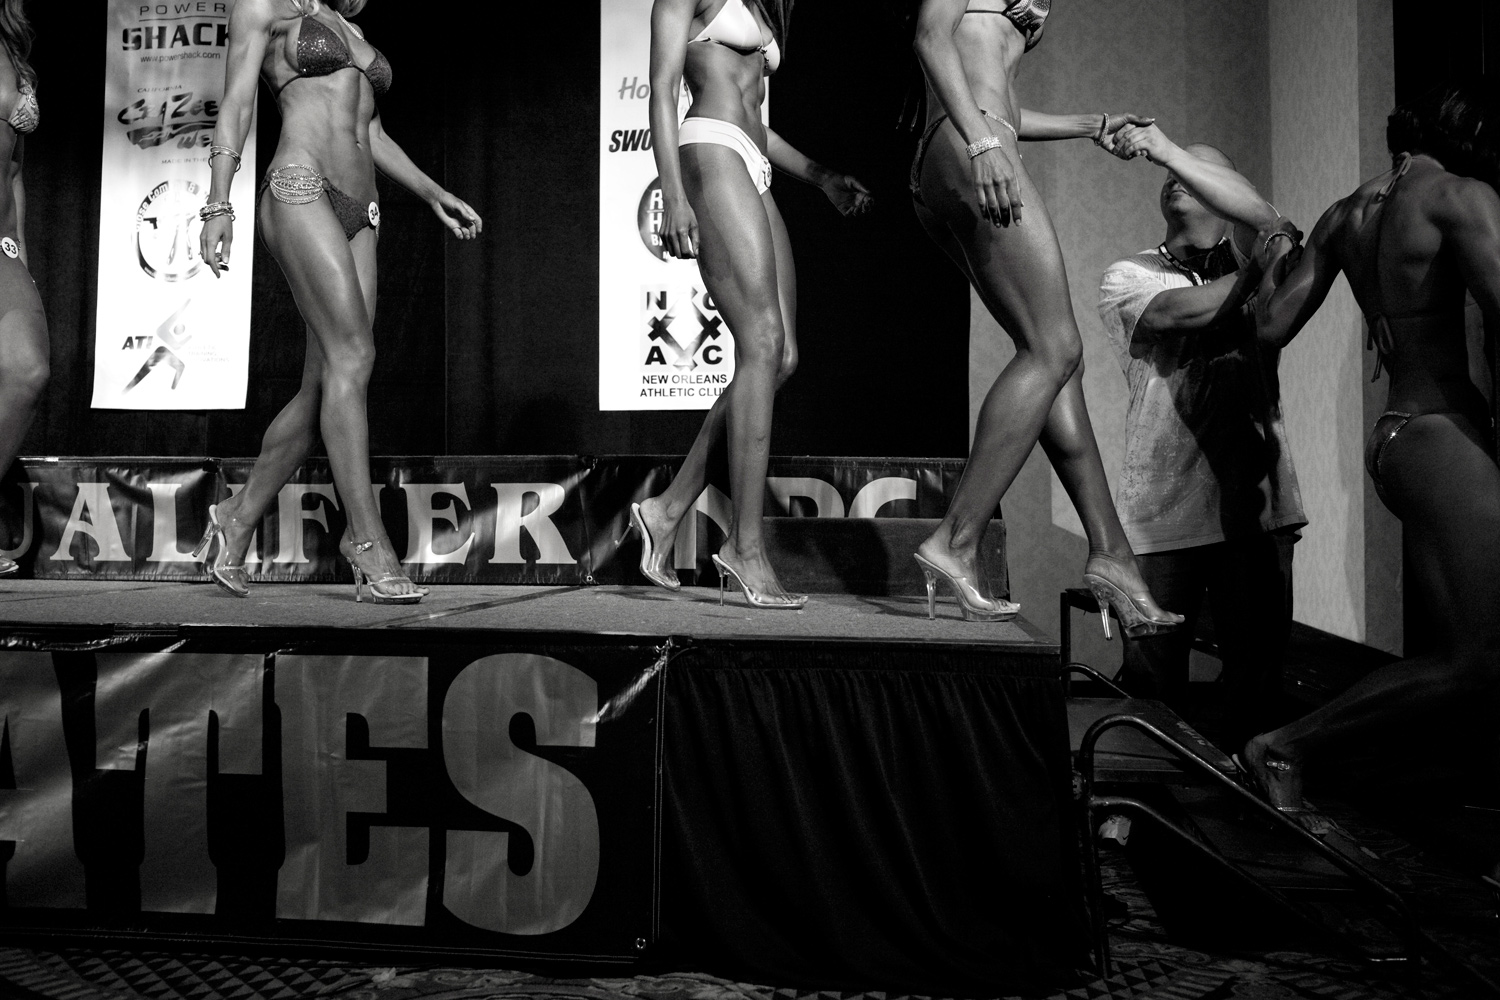 June 25, 2011. Women exiting the stage after the bikini judging at the IBBPro Greater Gulf States bodybuilding competition.